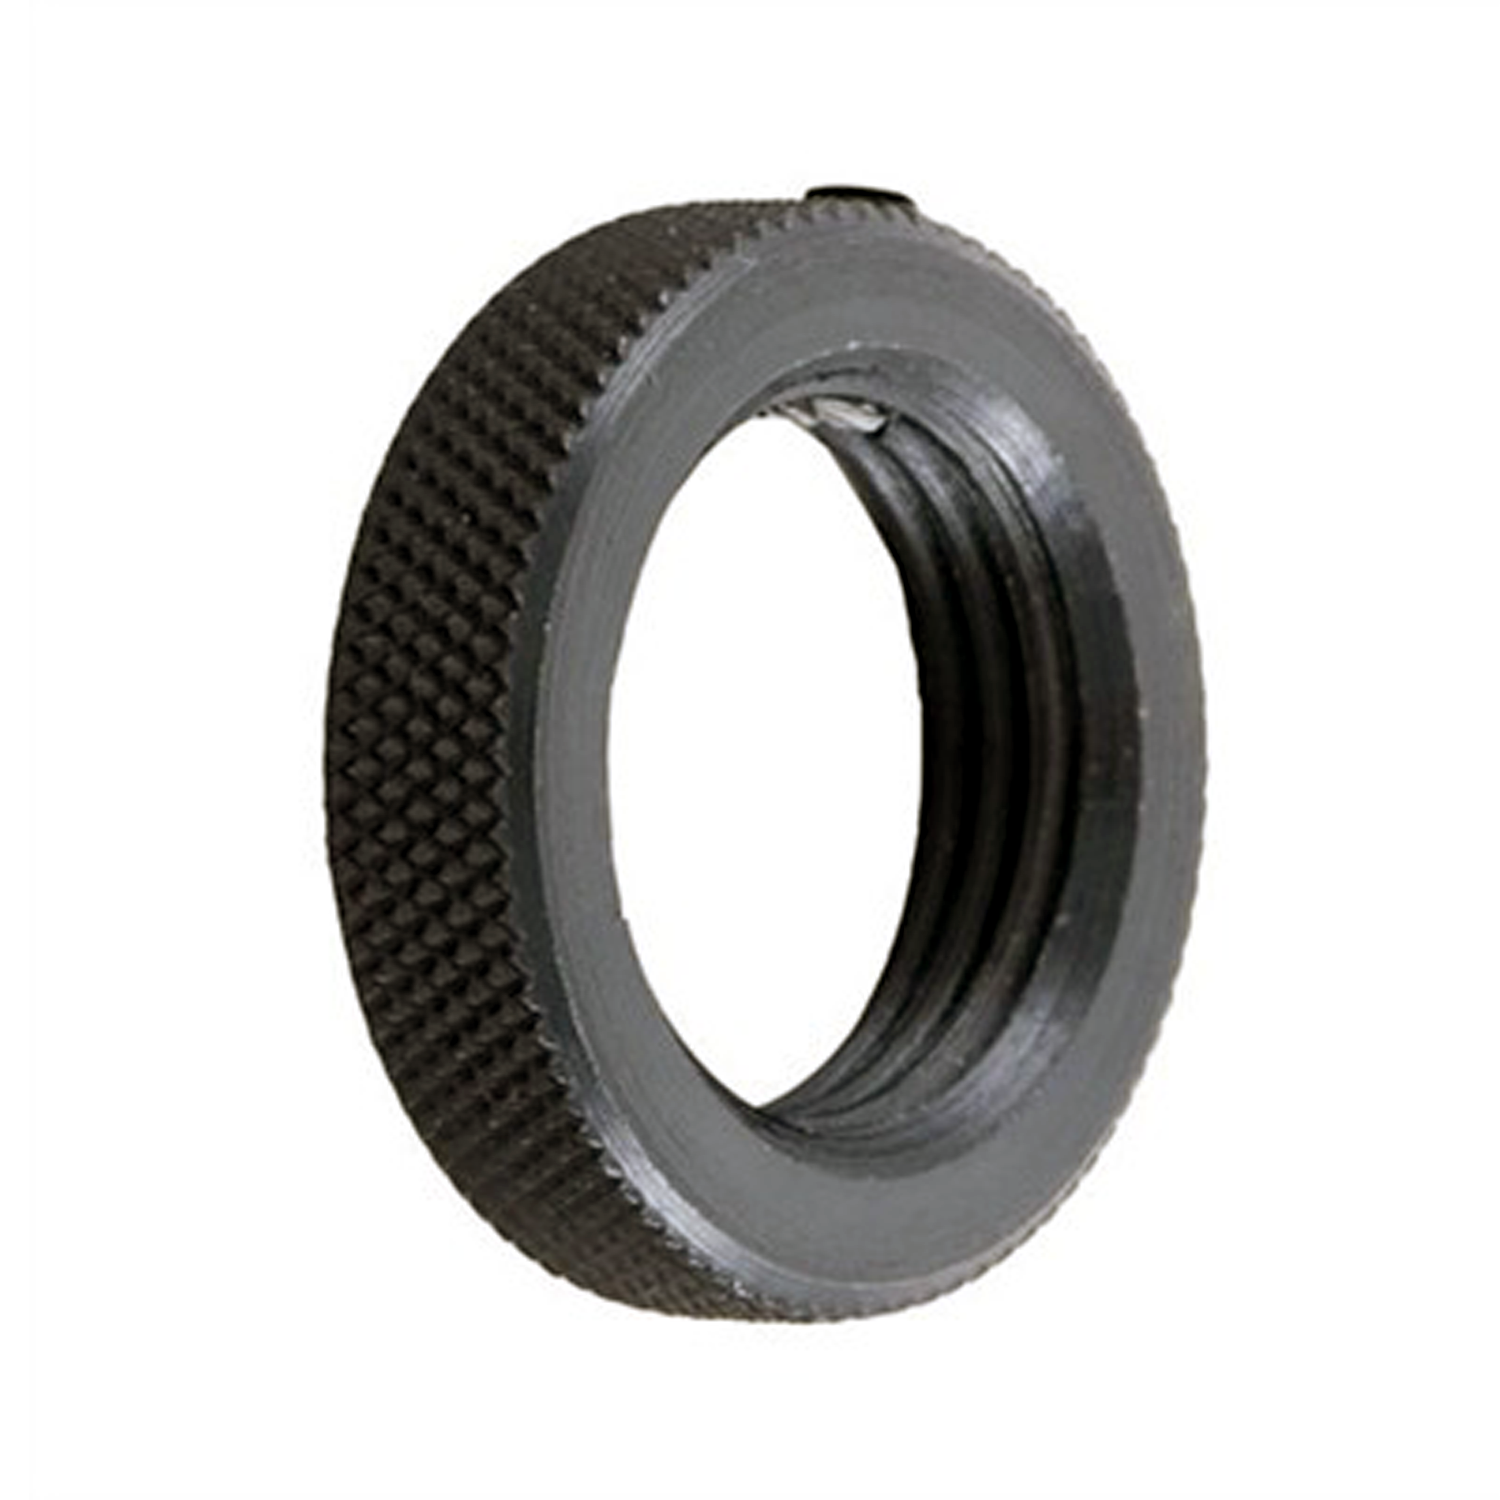 Redding Die Body Lock Ring - 7/8-14